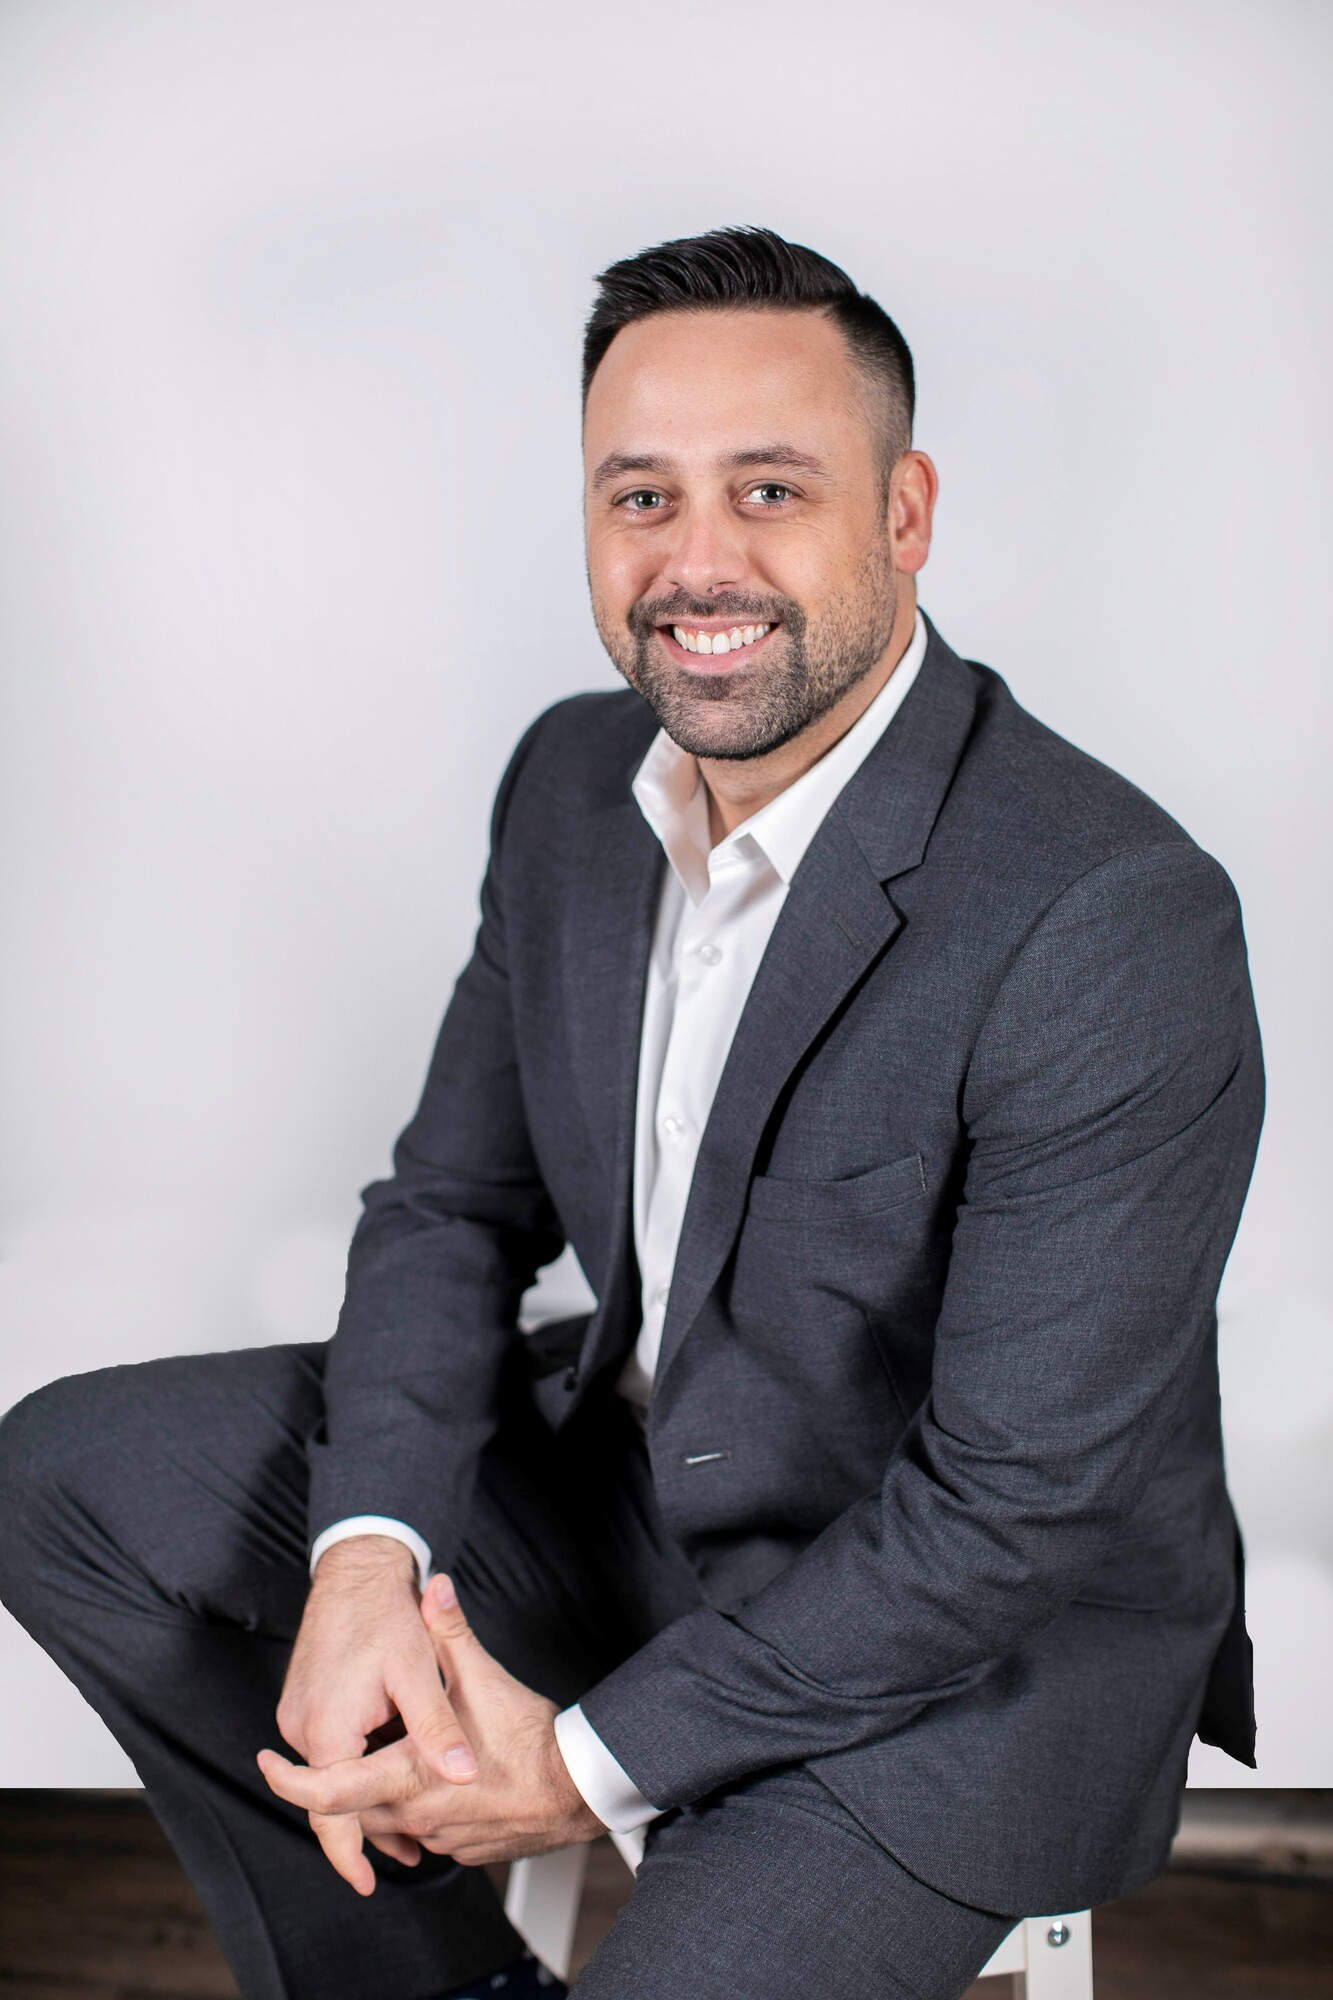 Jason Aucoin - TD Wealth Private Investment Advice - St. Catharines, ON L2S 3W2 - (905)704-0045 | ShowMeLocal.com